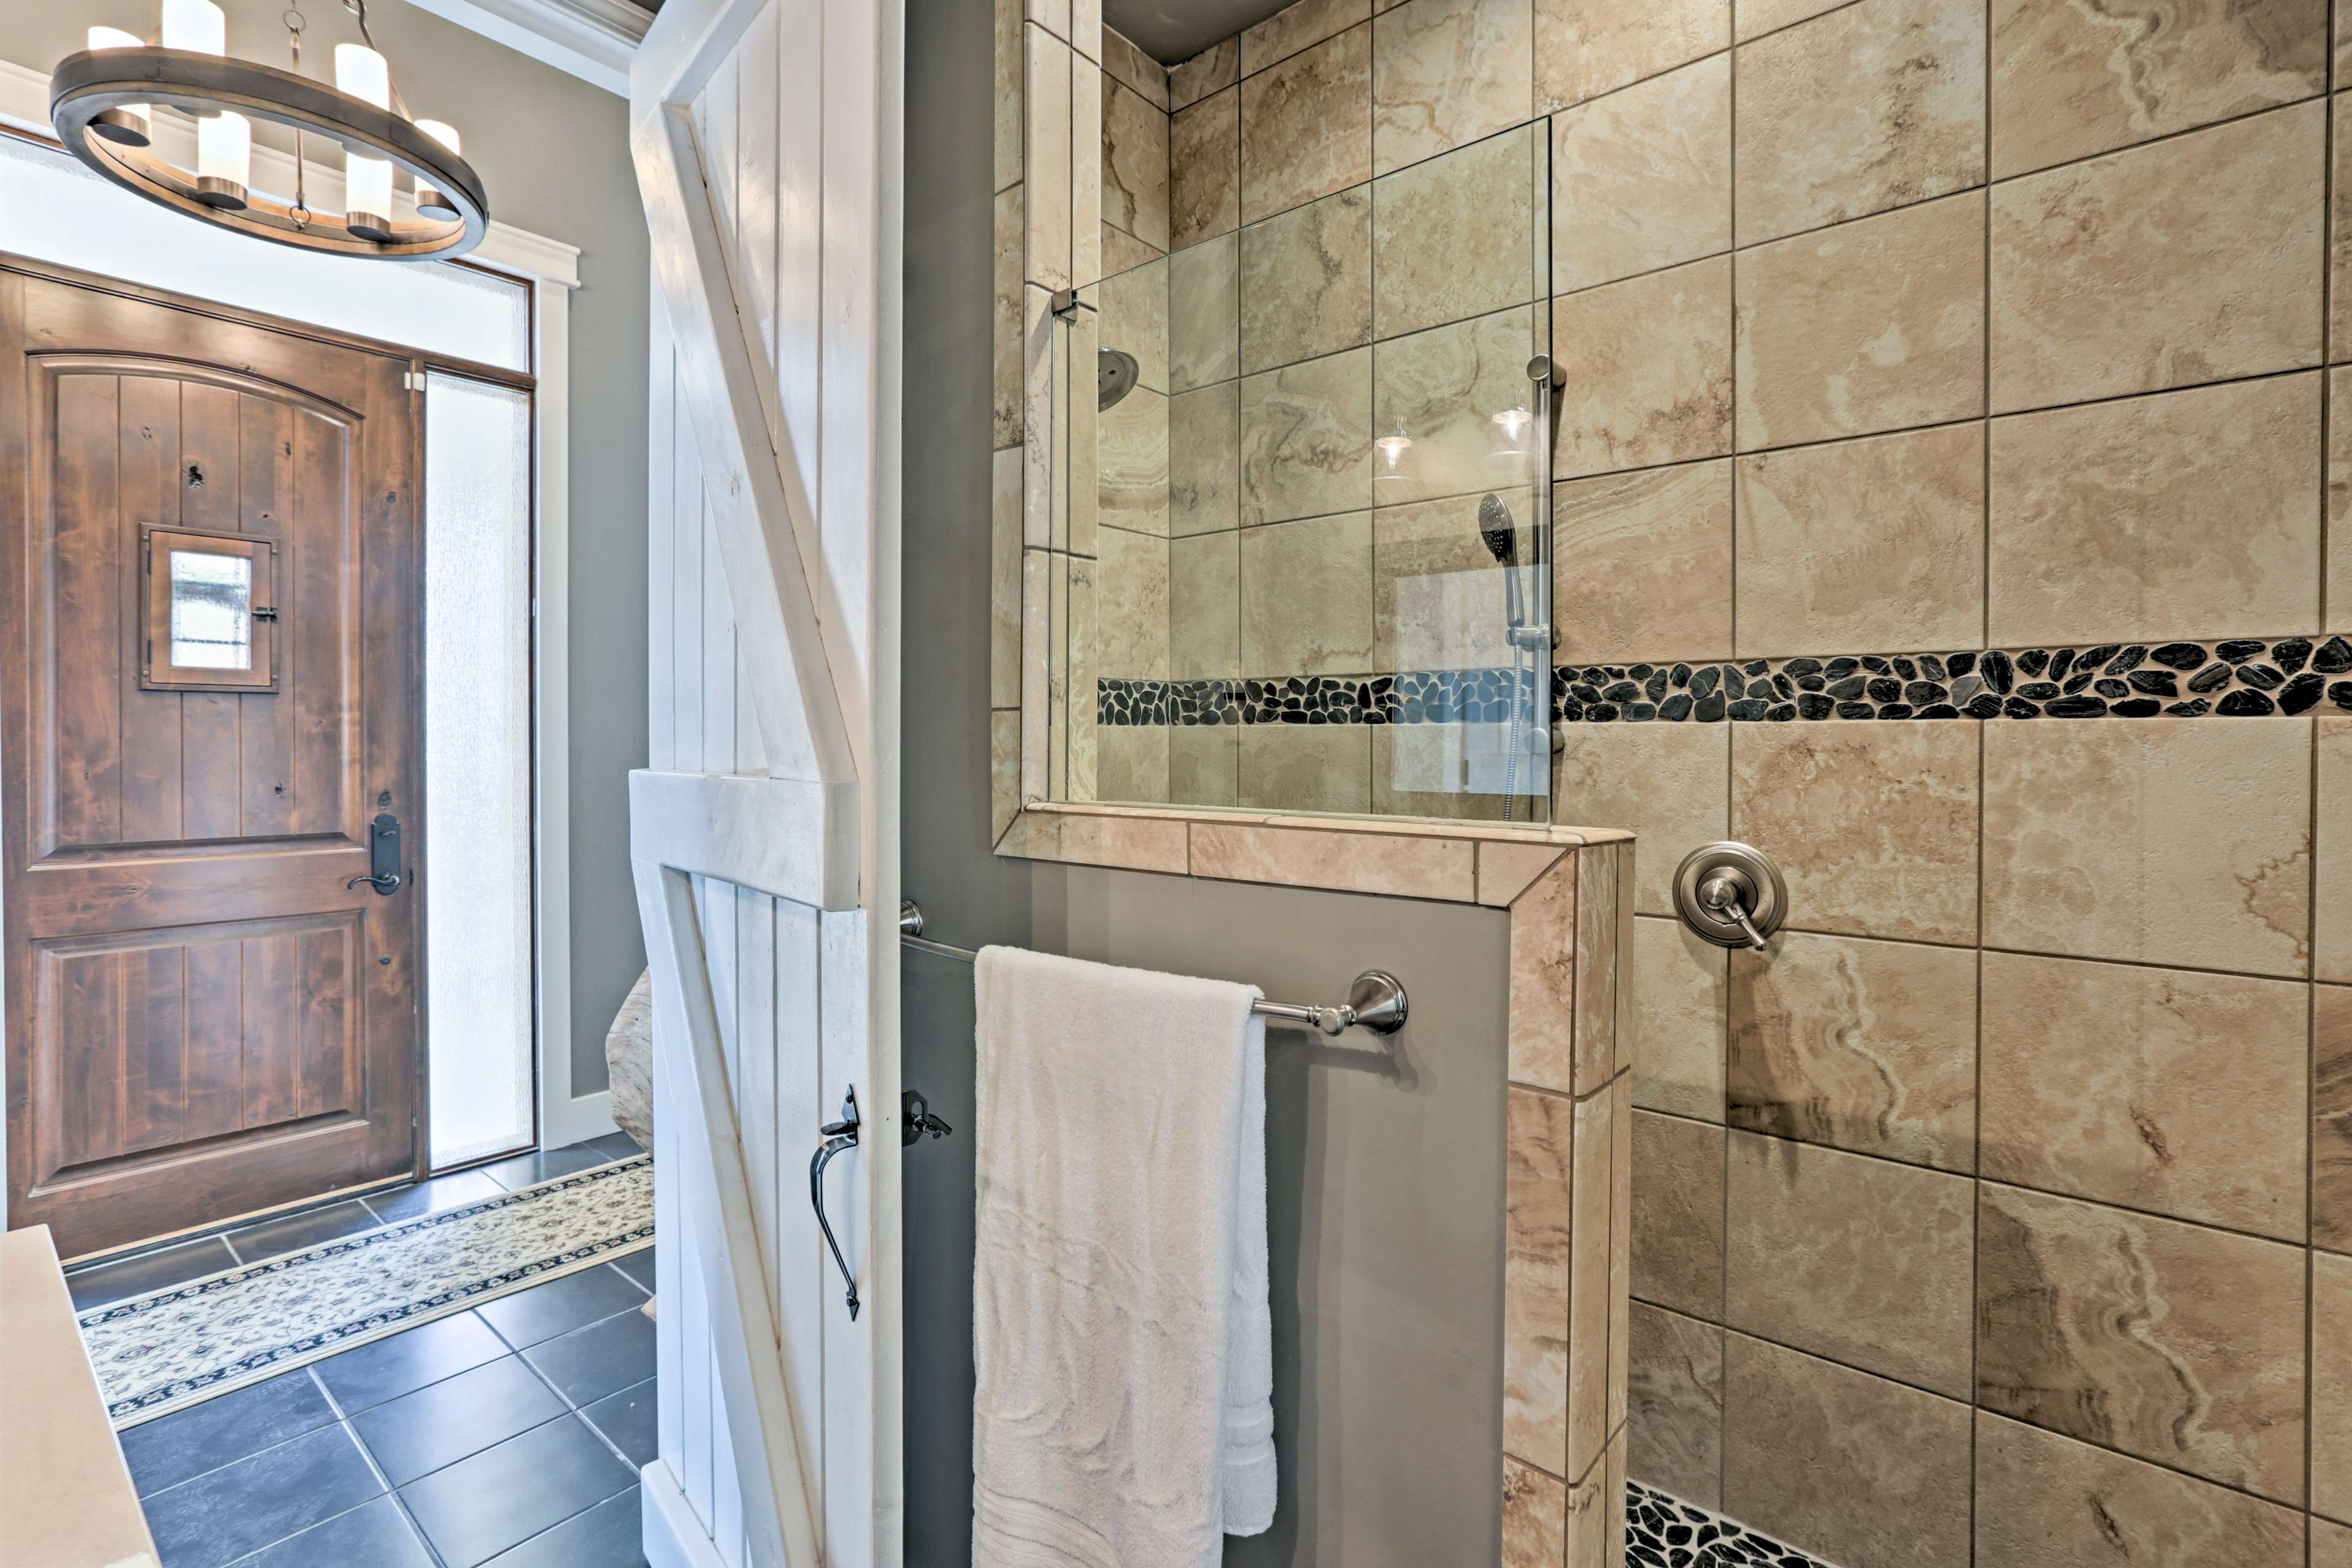 Steam away in this sizeable walk-in shower.